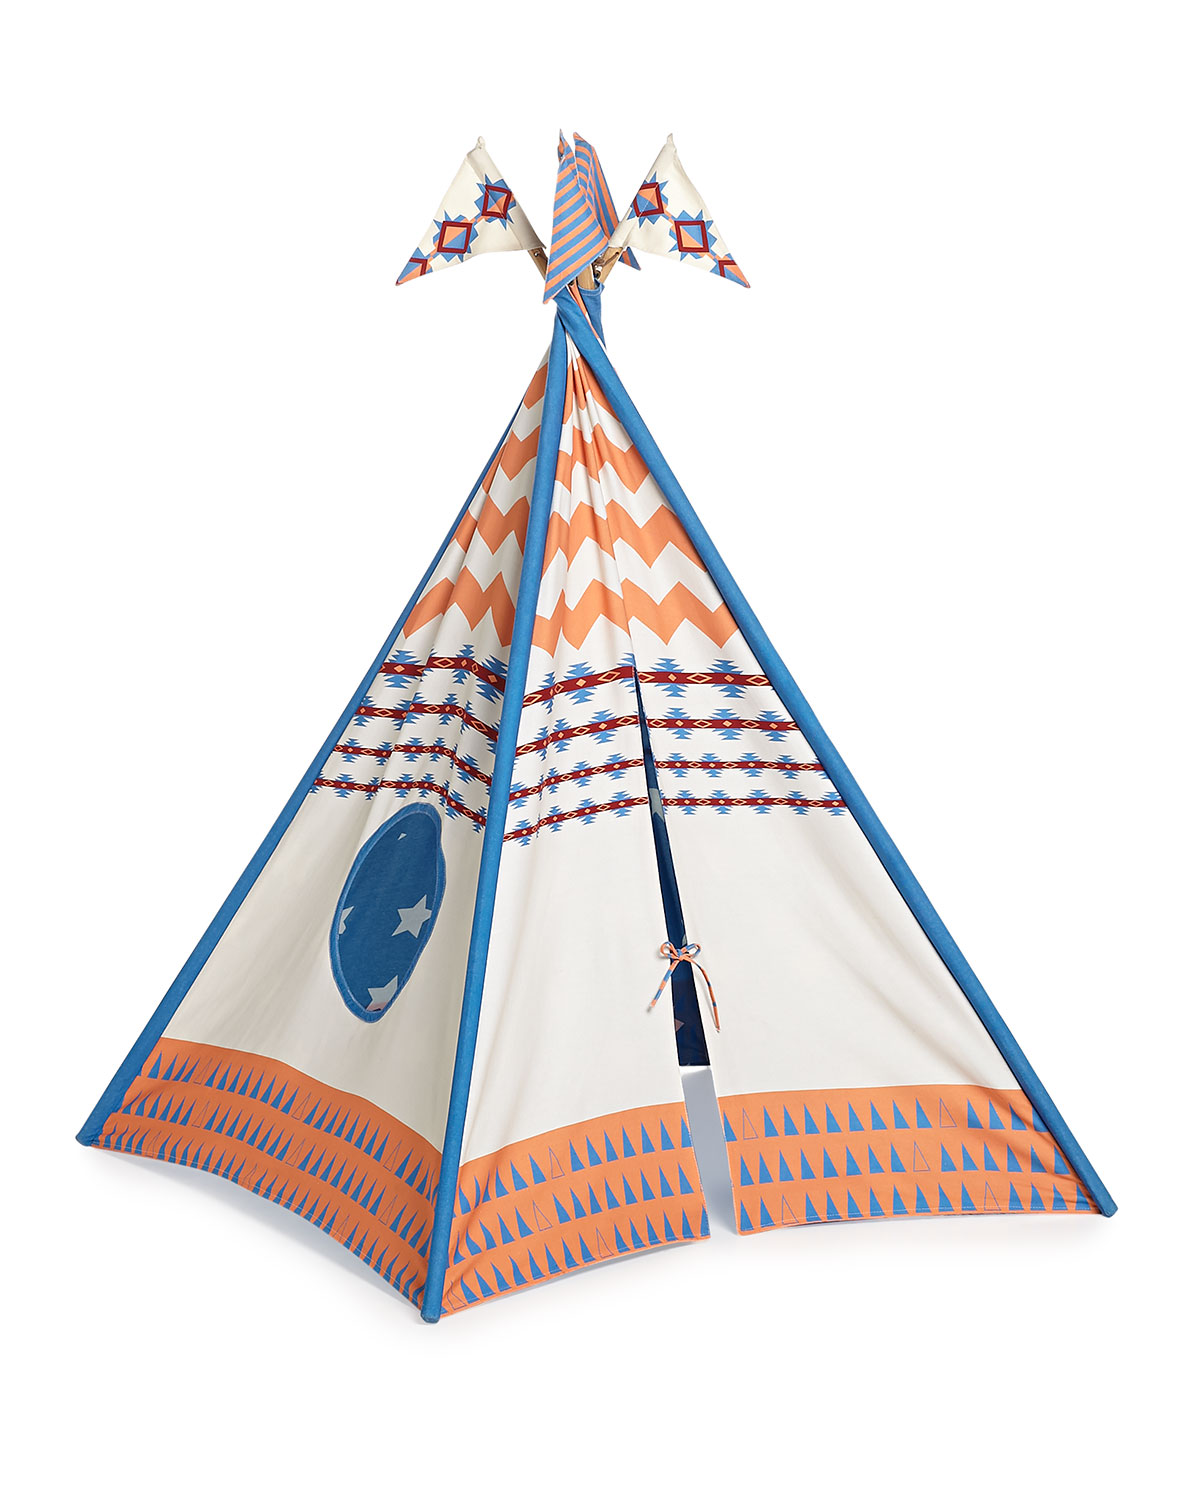 Pacific Play Tents - Boys' Canvas Play Tent - Pacific Play Tents - Blue